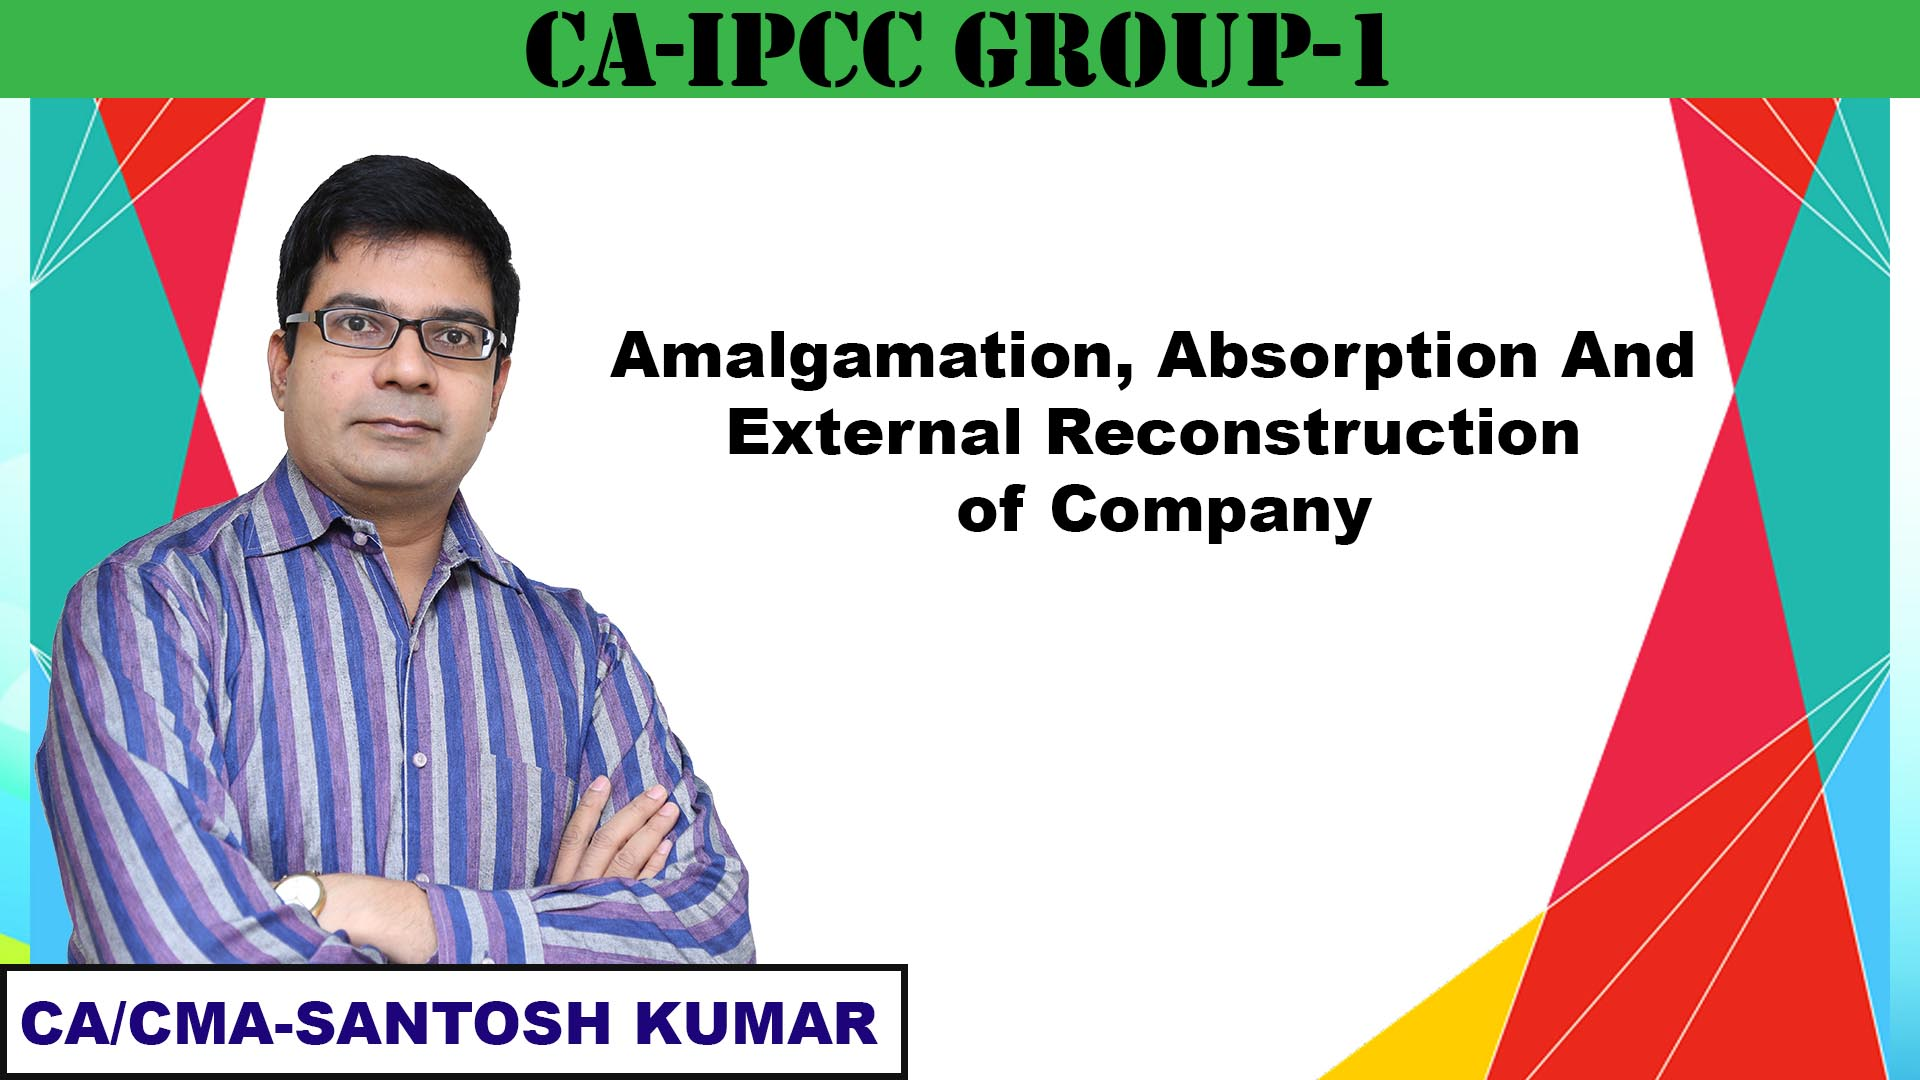 Amalgamation, Absorption and External Reconstruction of Company